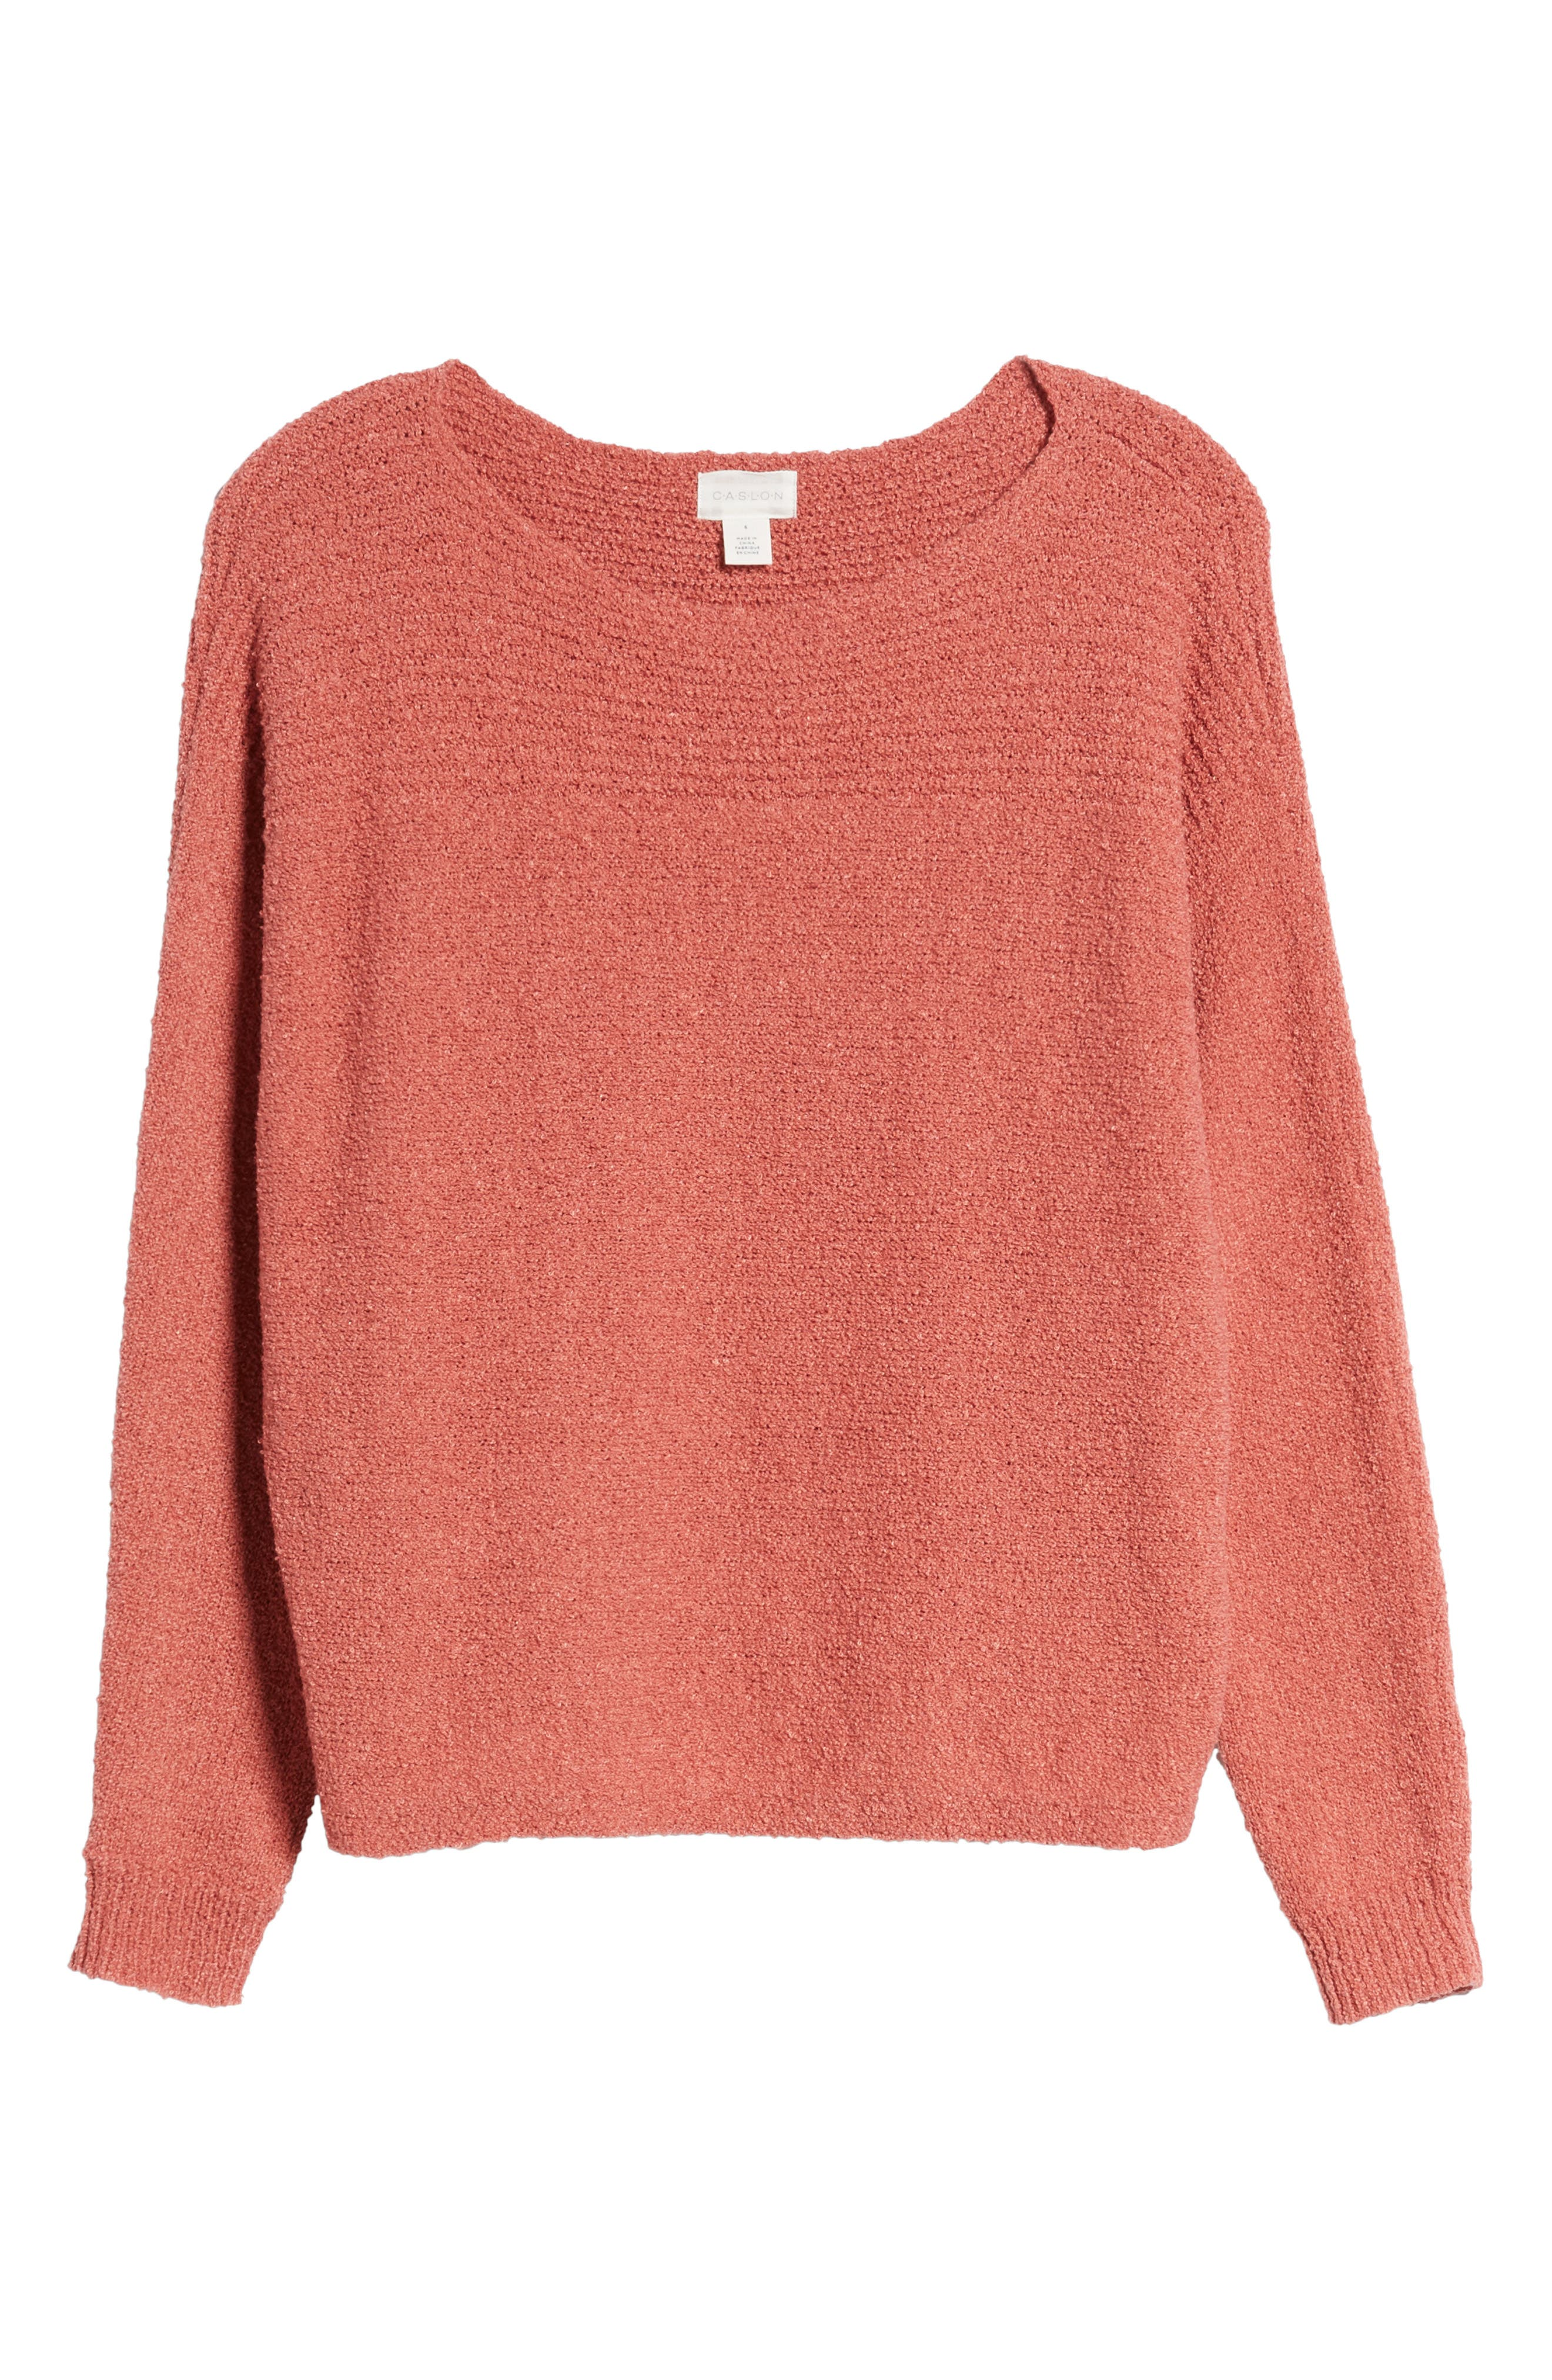 Calson<sup>®</sup> Dolman Sleeve Sweater,                             Alternate thumbnail 31, color,